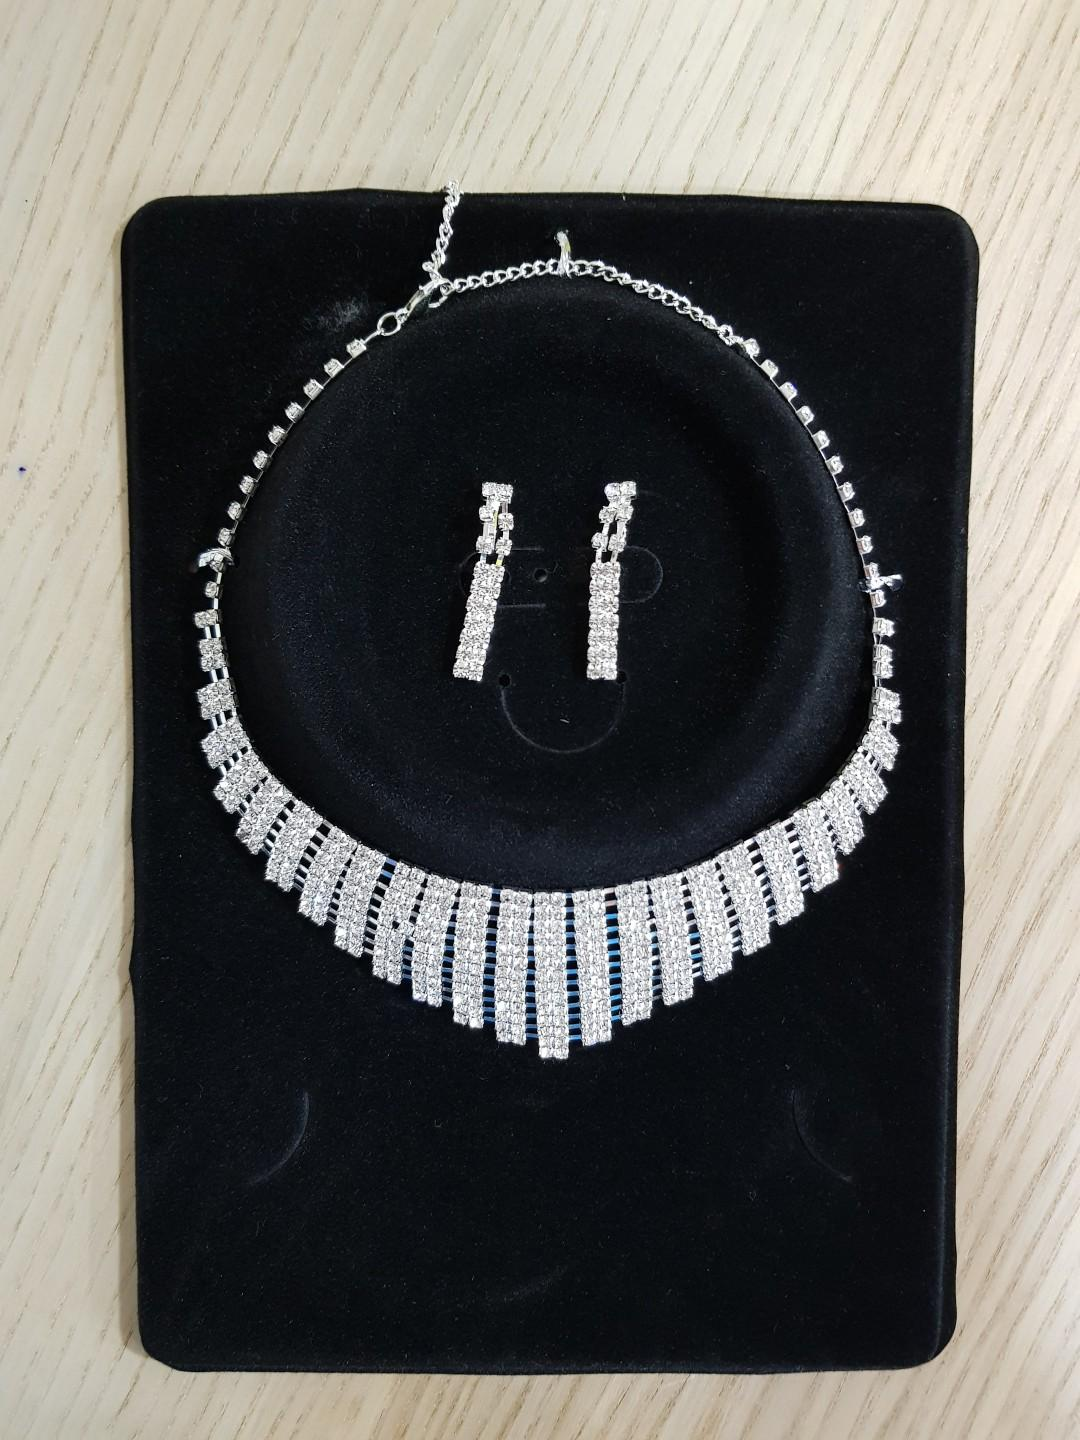 Cheap Necklace with Unused Earrings, Women's Fashion